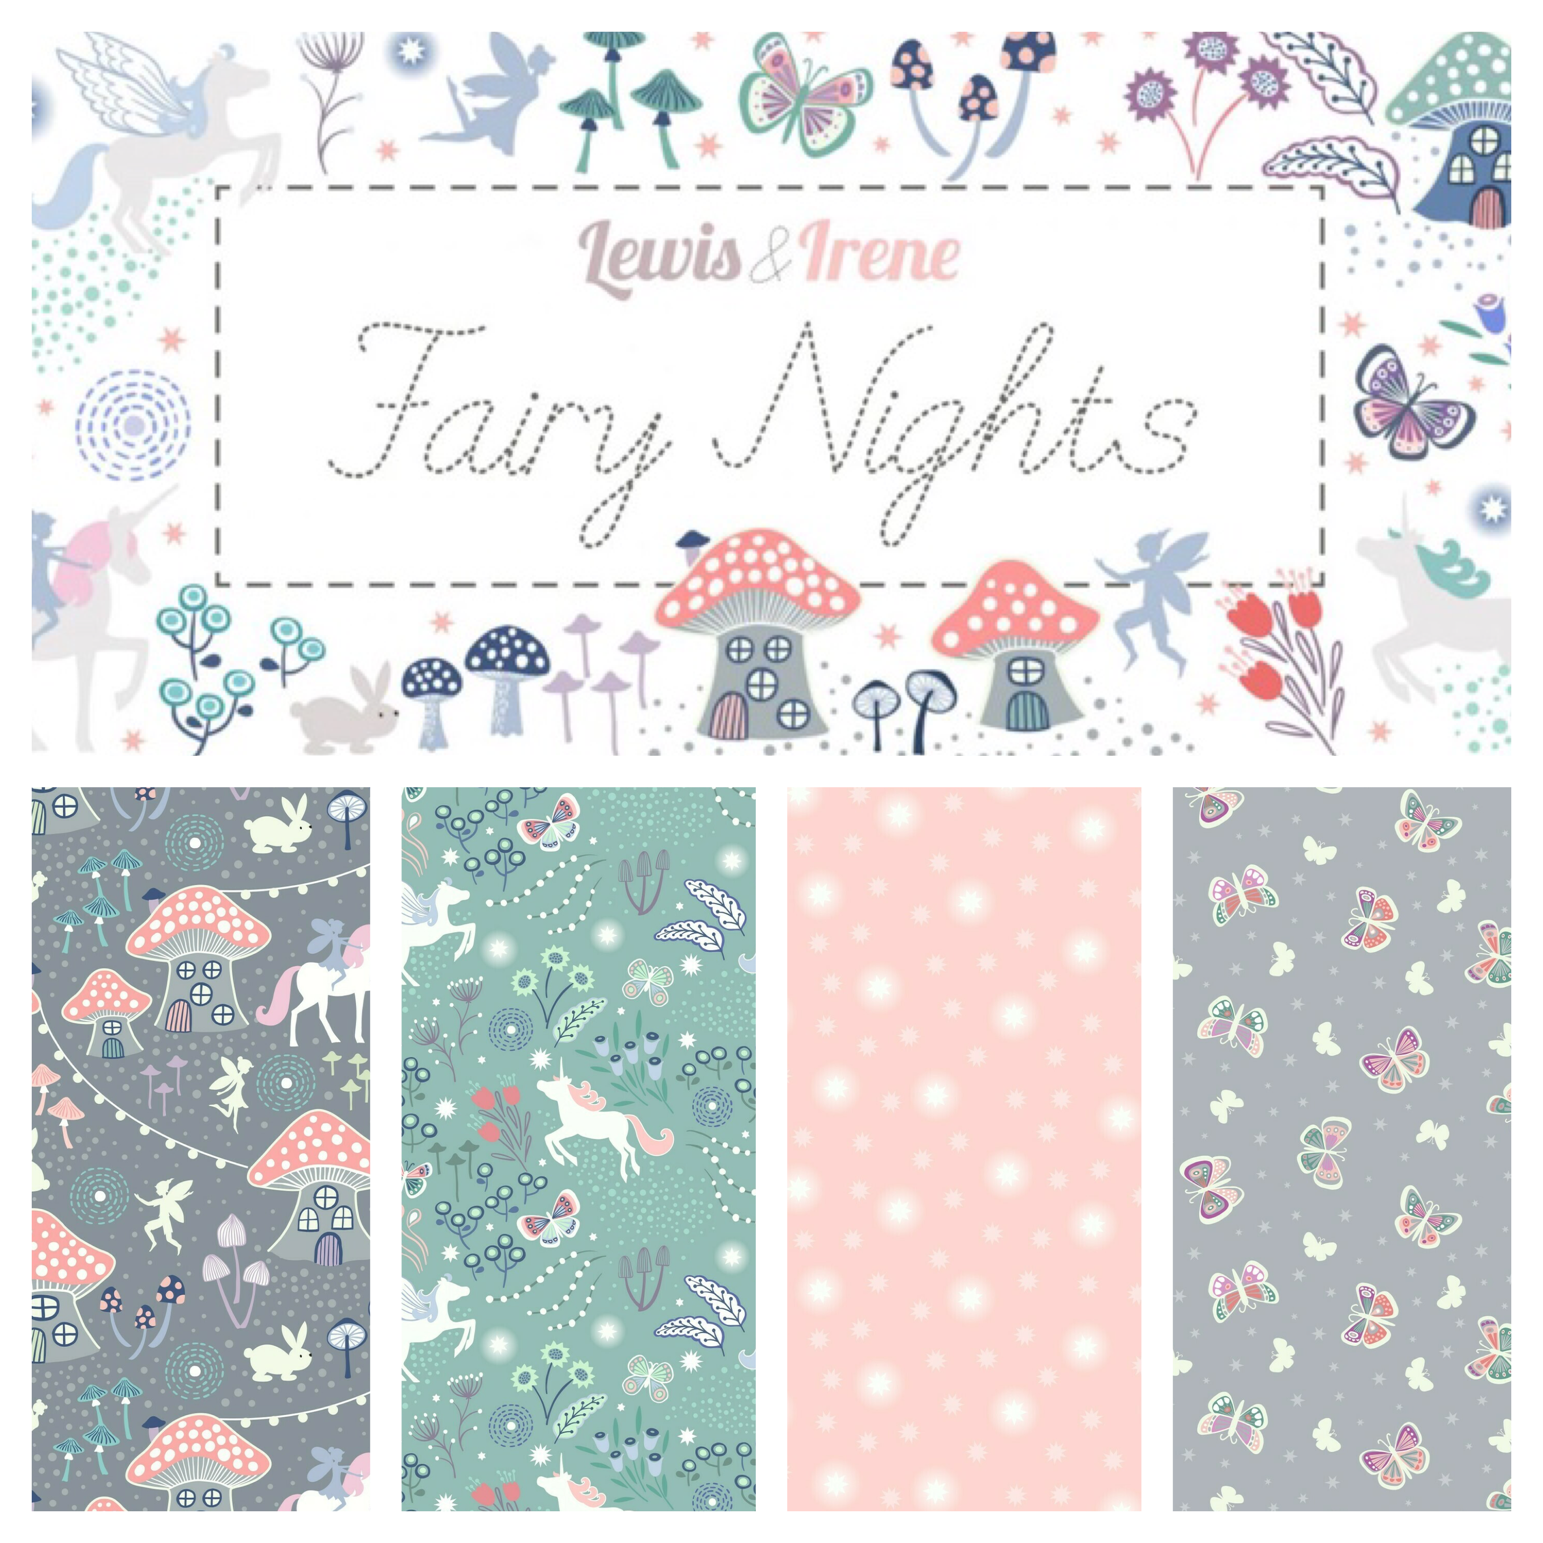 Glow in the dark fairy fabrics